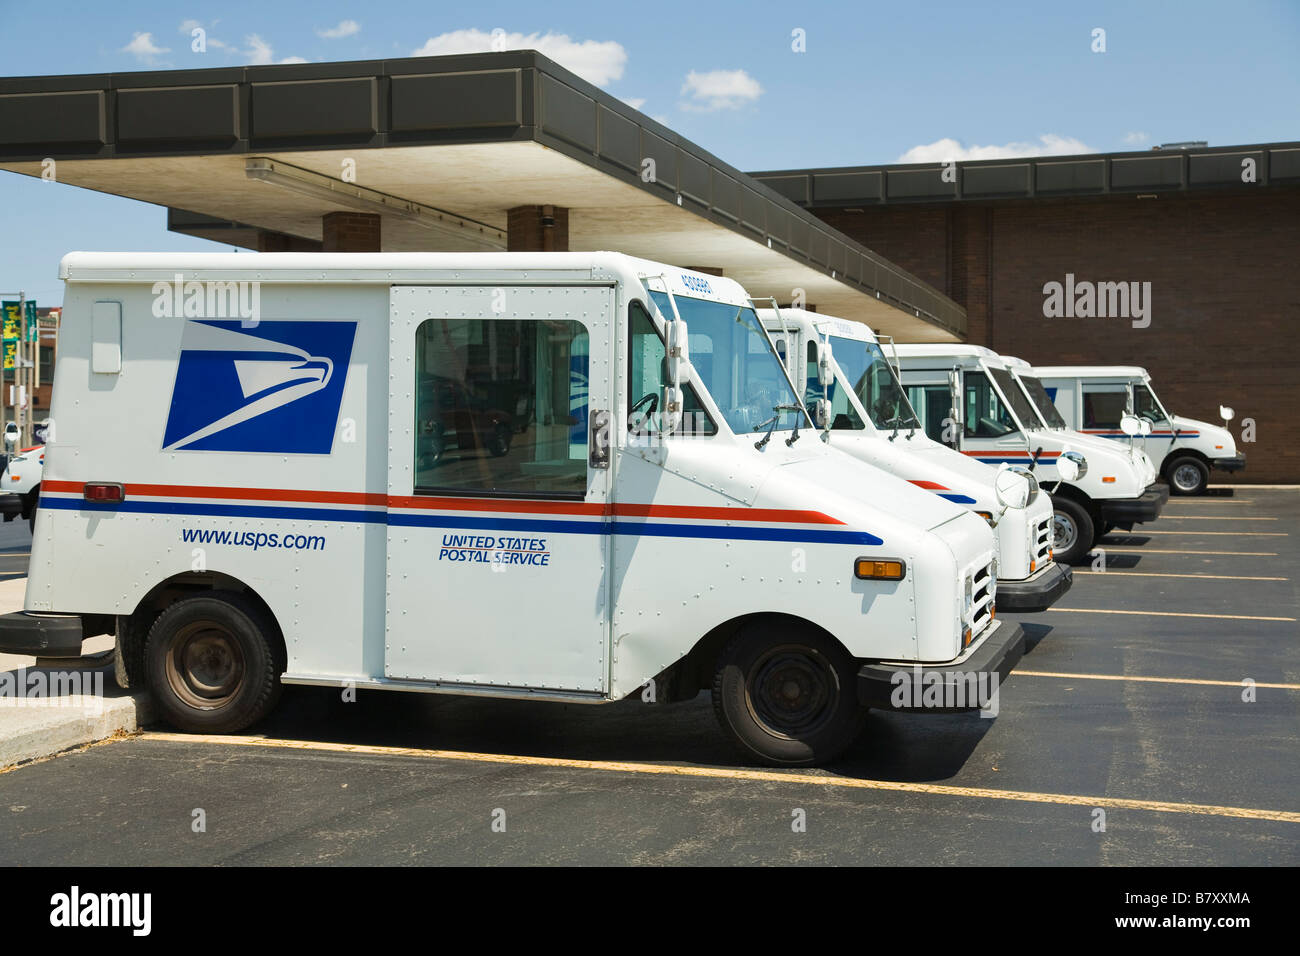 ILLINOIS DeKalb United States Postal Service mail trucks parked at post office building - Stock Image